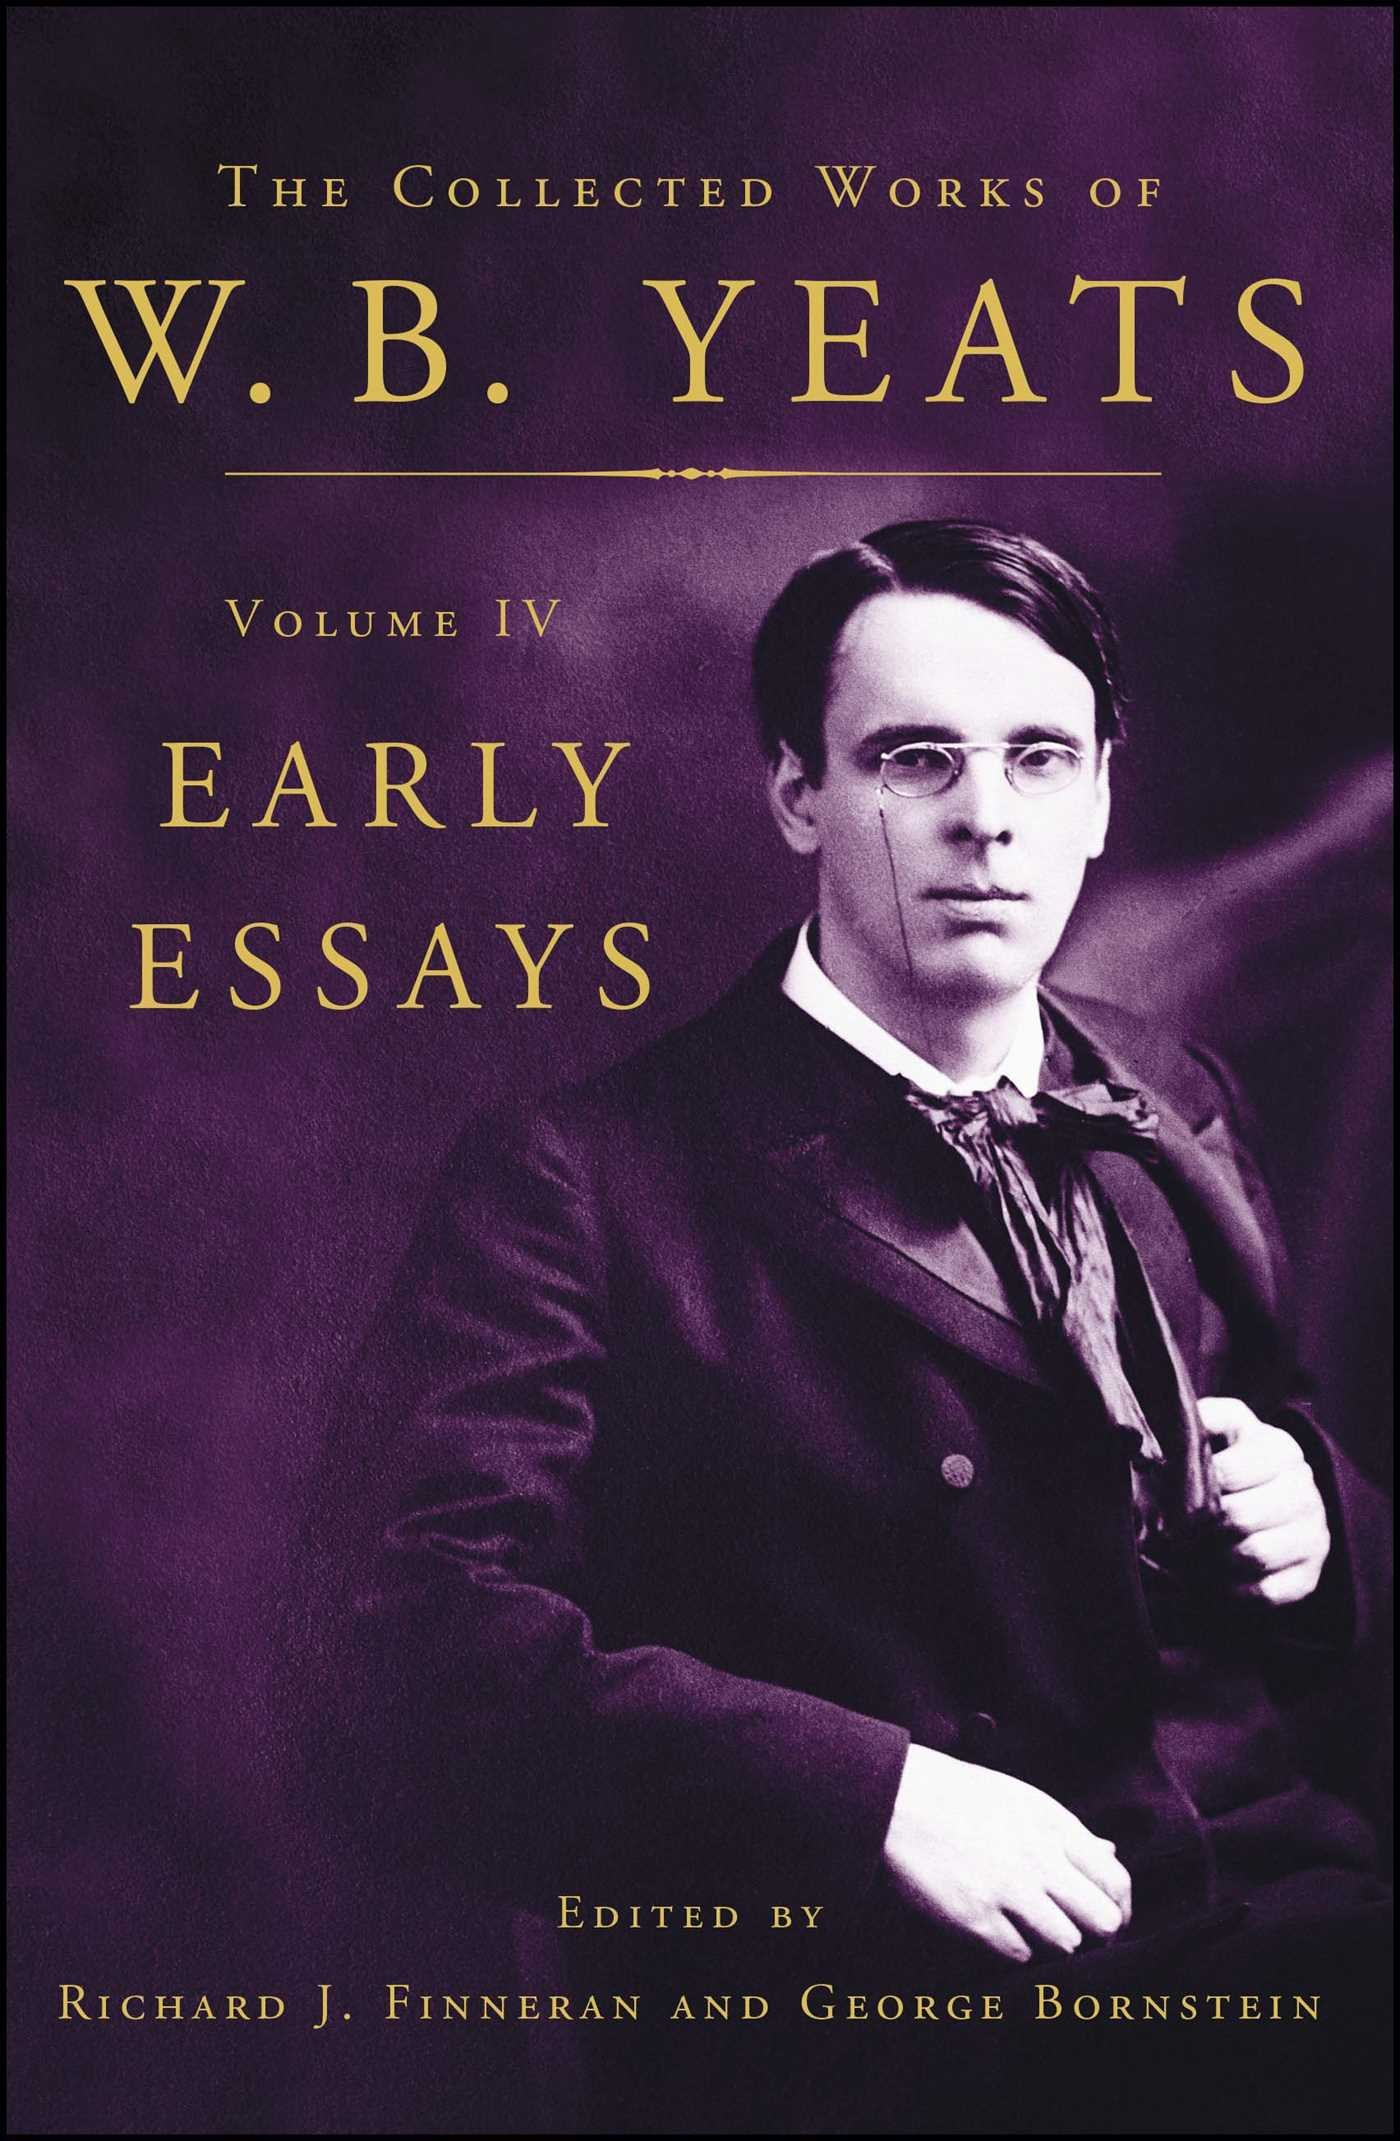 Position Paper Essay The Collected Works Of Wb Yeats Volume Iv Early Essays William Butler  Yeats Richard J Finneran George Bornstein  Amazoncom  Books Locavores Synthesis Essay also Thesis Statement For Argumentative Essay The Collected Works Of Wb Yeats Volume Iv Early Essays William  Essay Thesis Statement Examples